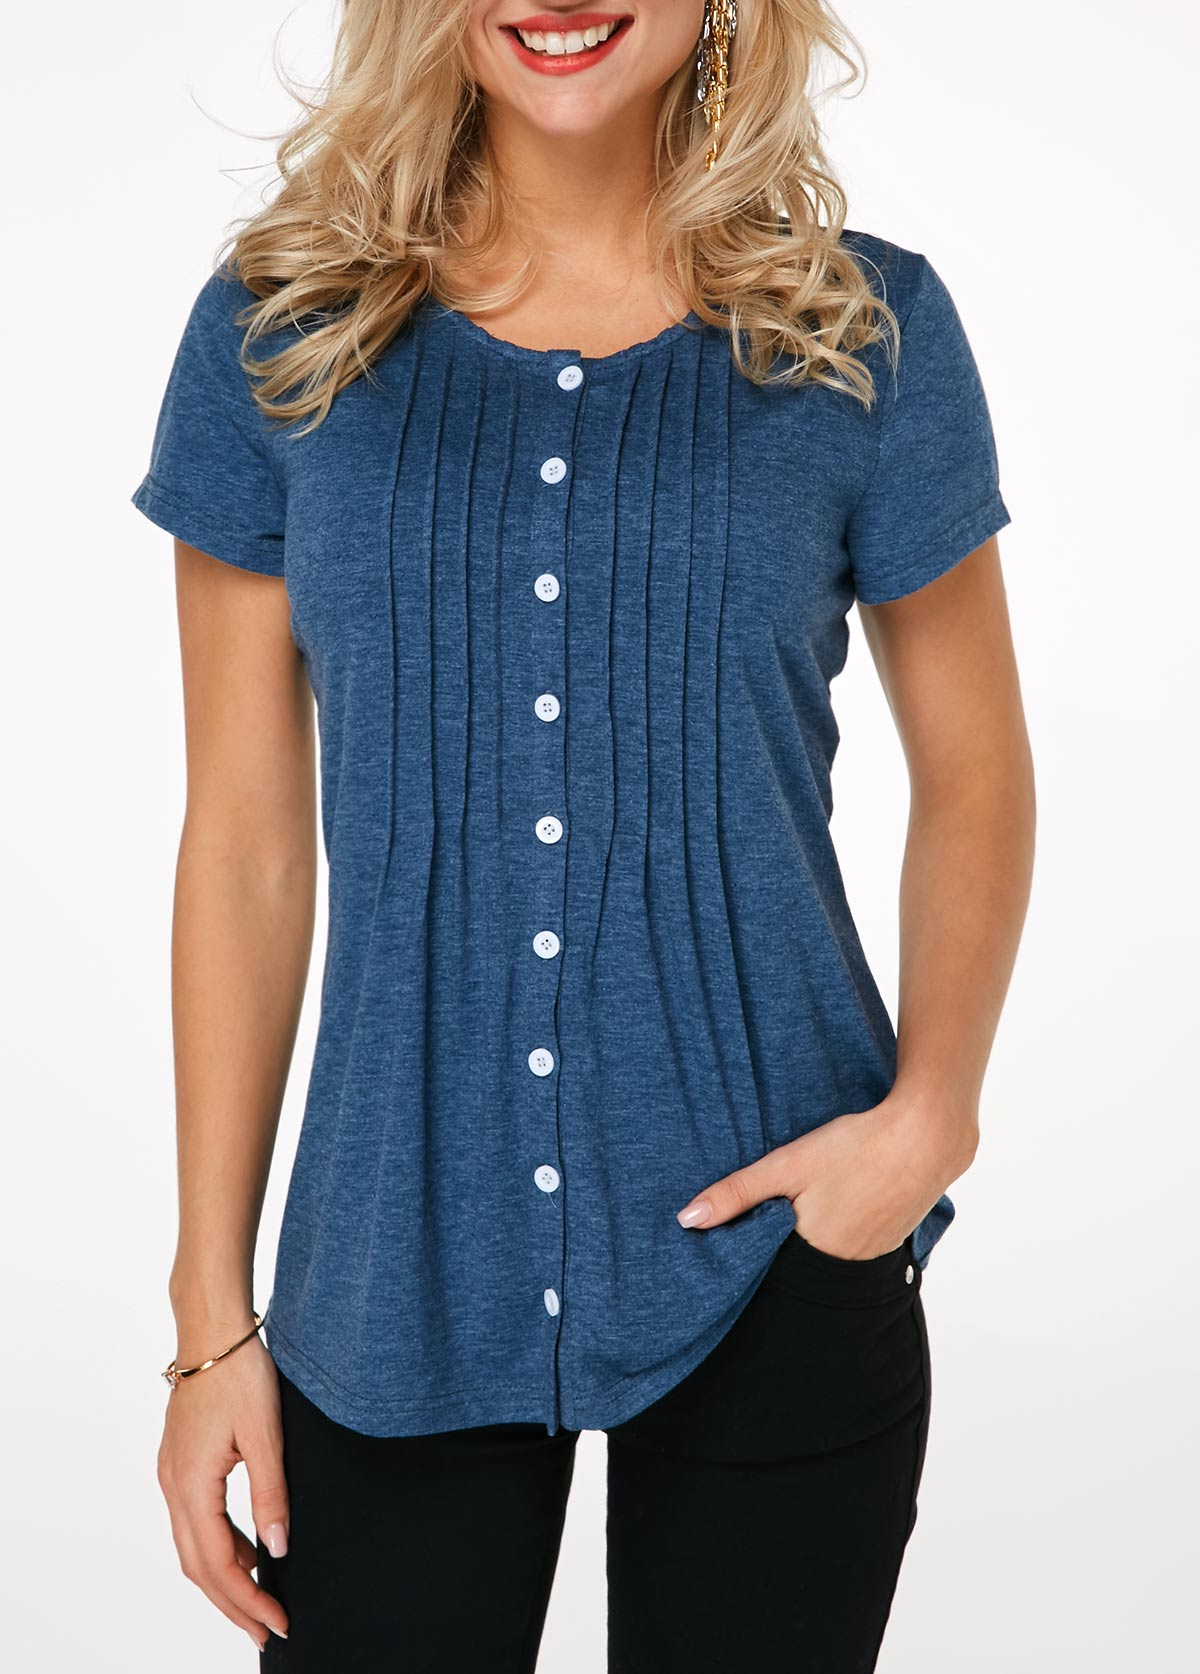 Crinkle Chest Button Up Navy Blue T Shirt